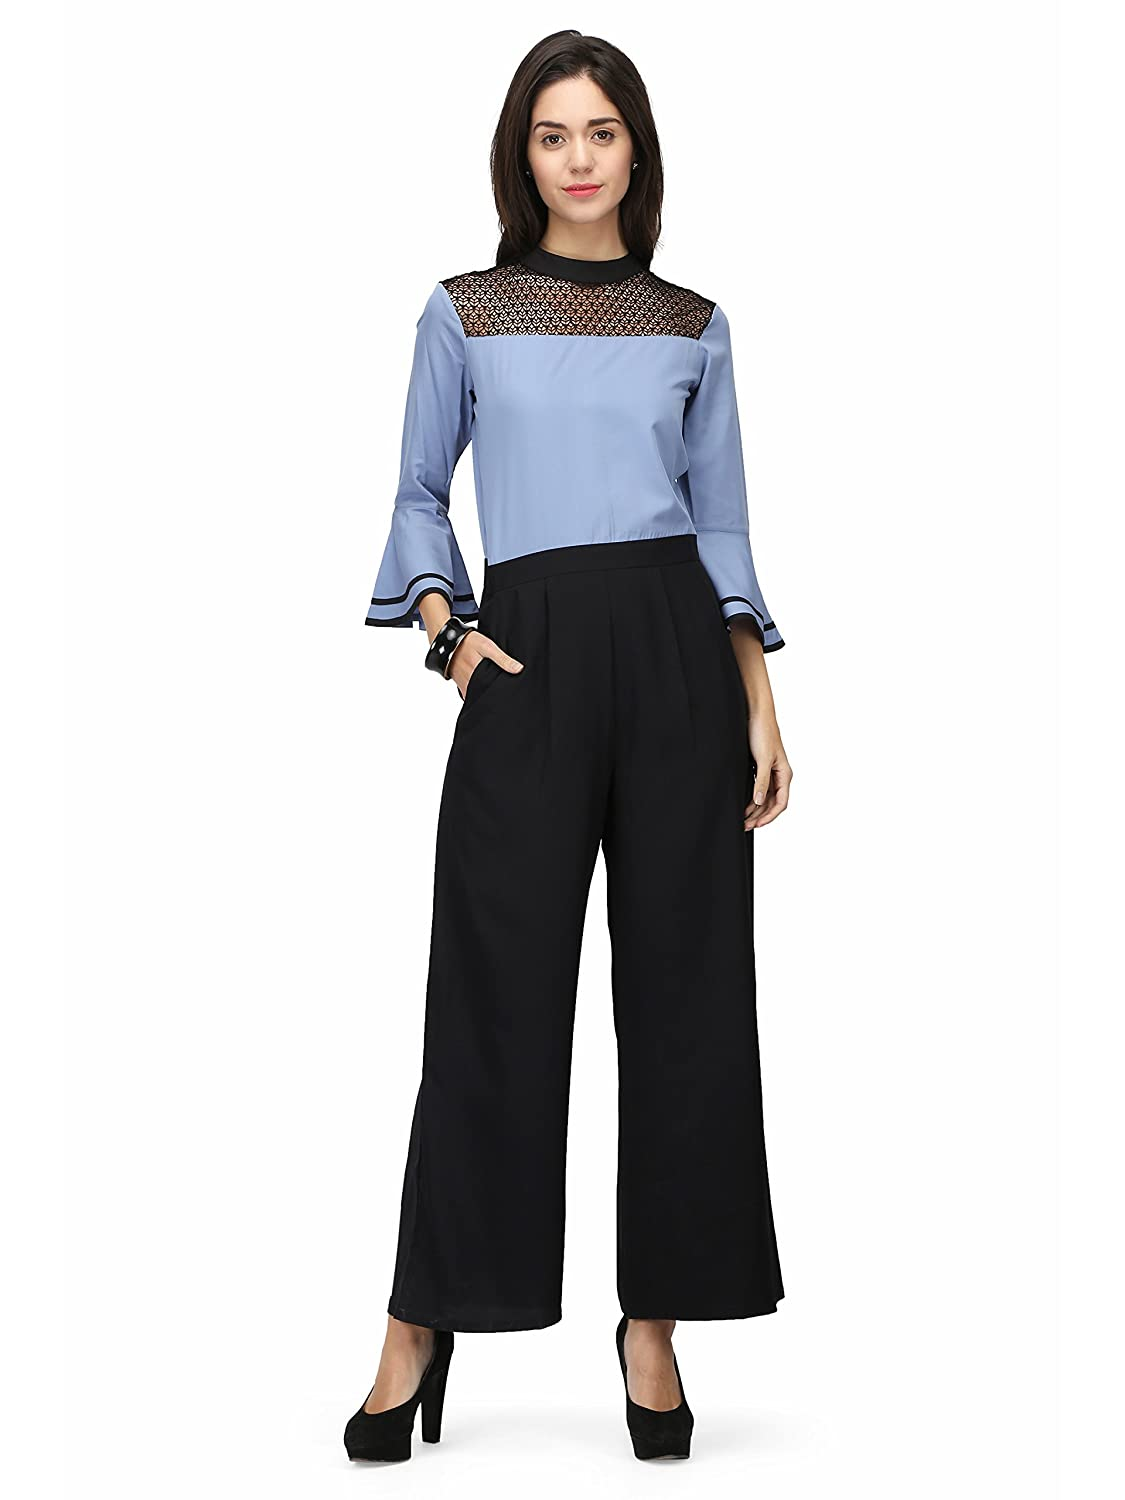 748ace30d97 Eavan Women s Black   Blue Flared Jumpsuit  Amazon.in  Clothing    Accessories